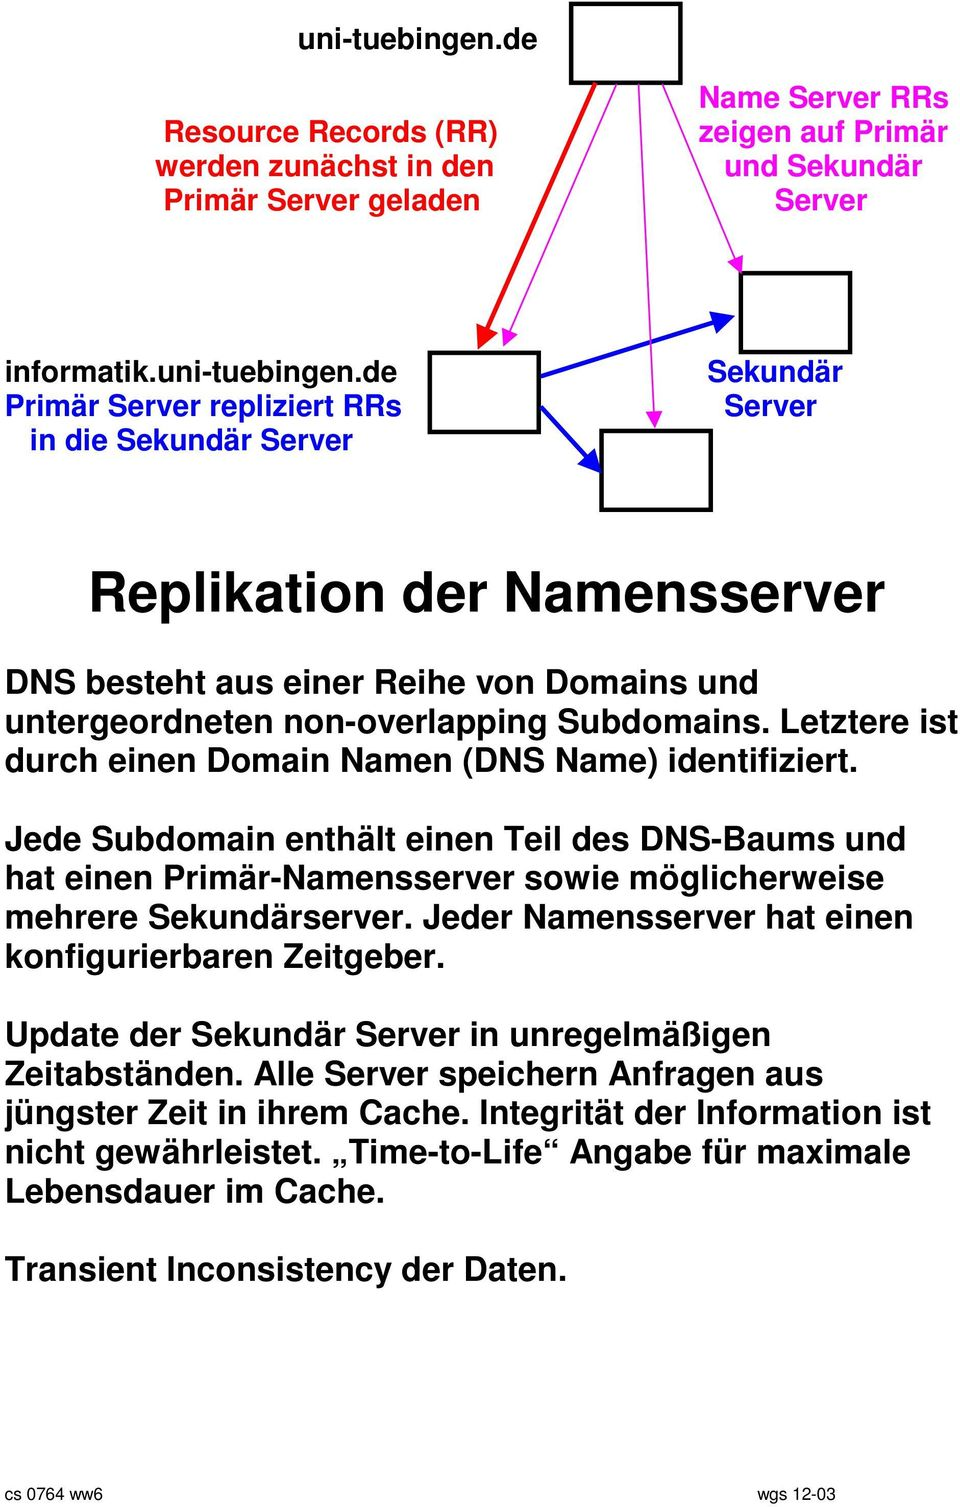 de Primär Server repliziert RRs in die Sekundär Server Sekundär Server Replikation der Namensserver DNS besteht aus einer Reihe von Domains und untergeordneten non-overlapping Subdomains.